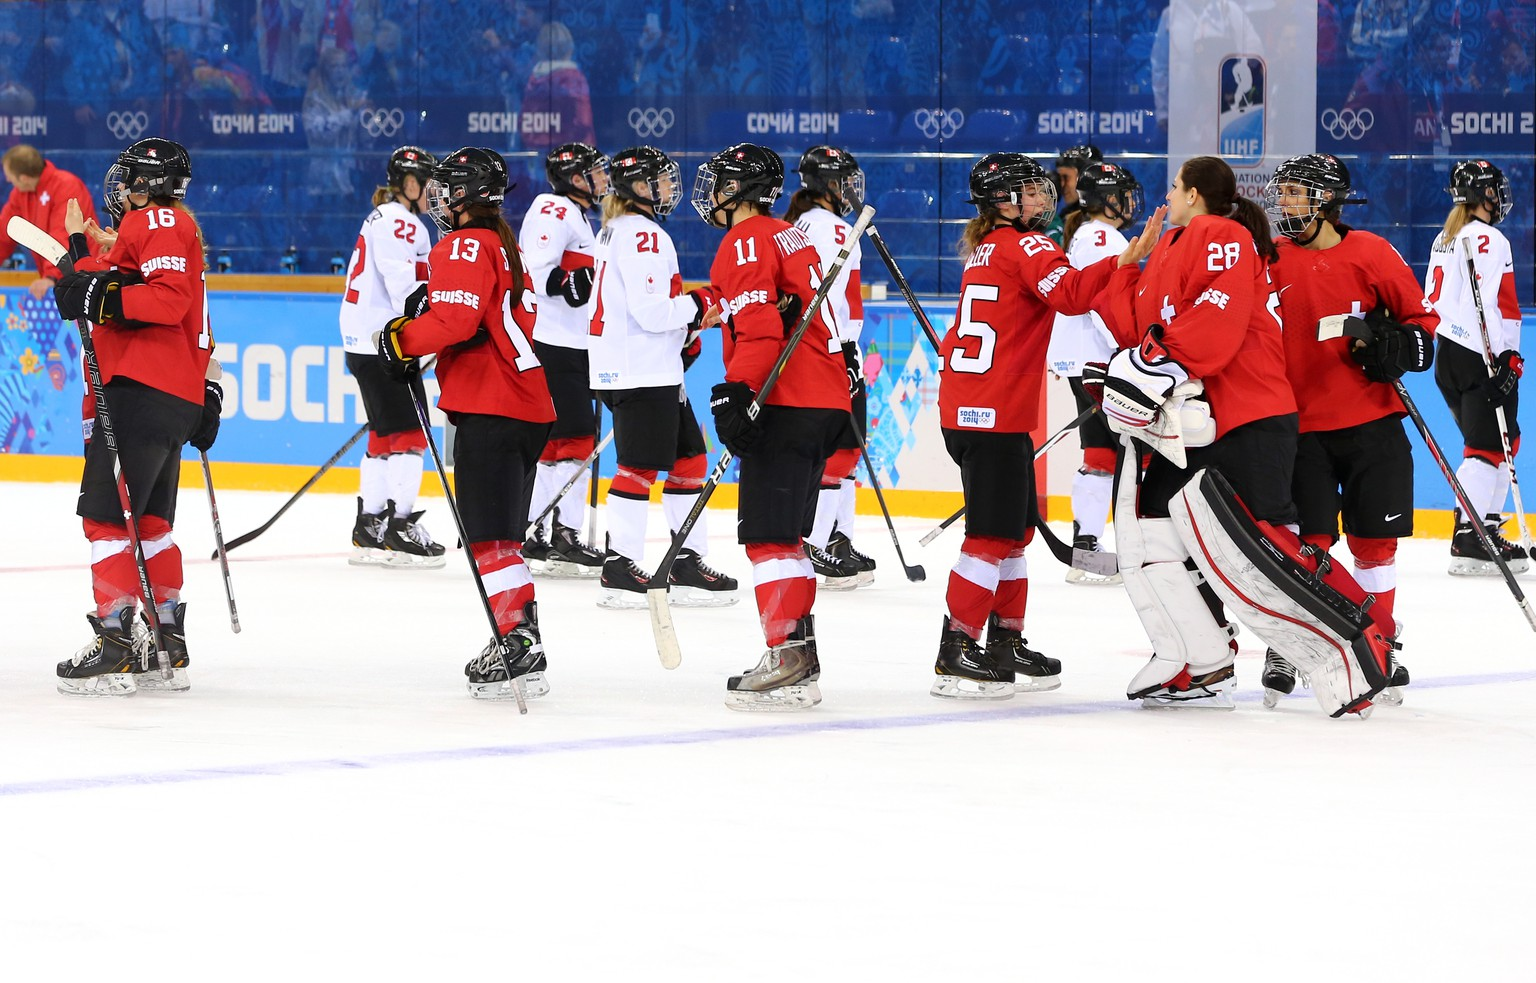 SOCHI, RUSSIA - FEBRUARY 17:  Canadian and Swiss players shake hands after Canada defeated Switzerland 3-1 during the Women's Ice Hockey Playoffs Semifinal game on day ten of the Sochi 2014 Winter Olympics at Shayba Arena on February 17, 2014 in Sochi, Russia.  (Photo by Martin Rose/Getty Images)